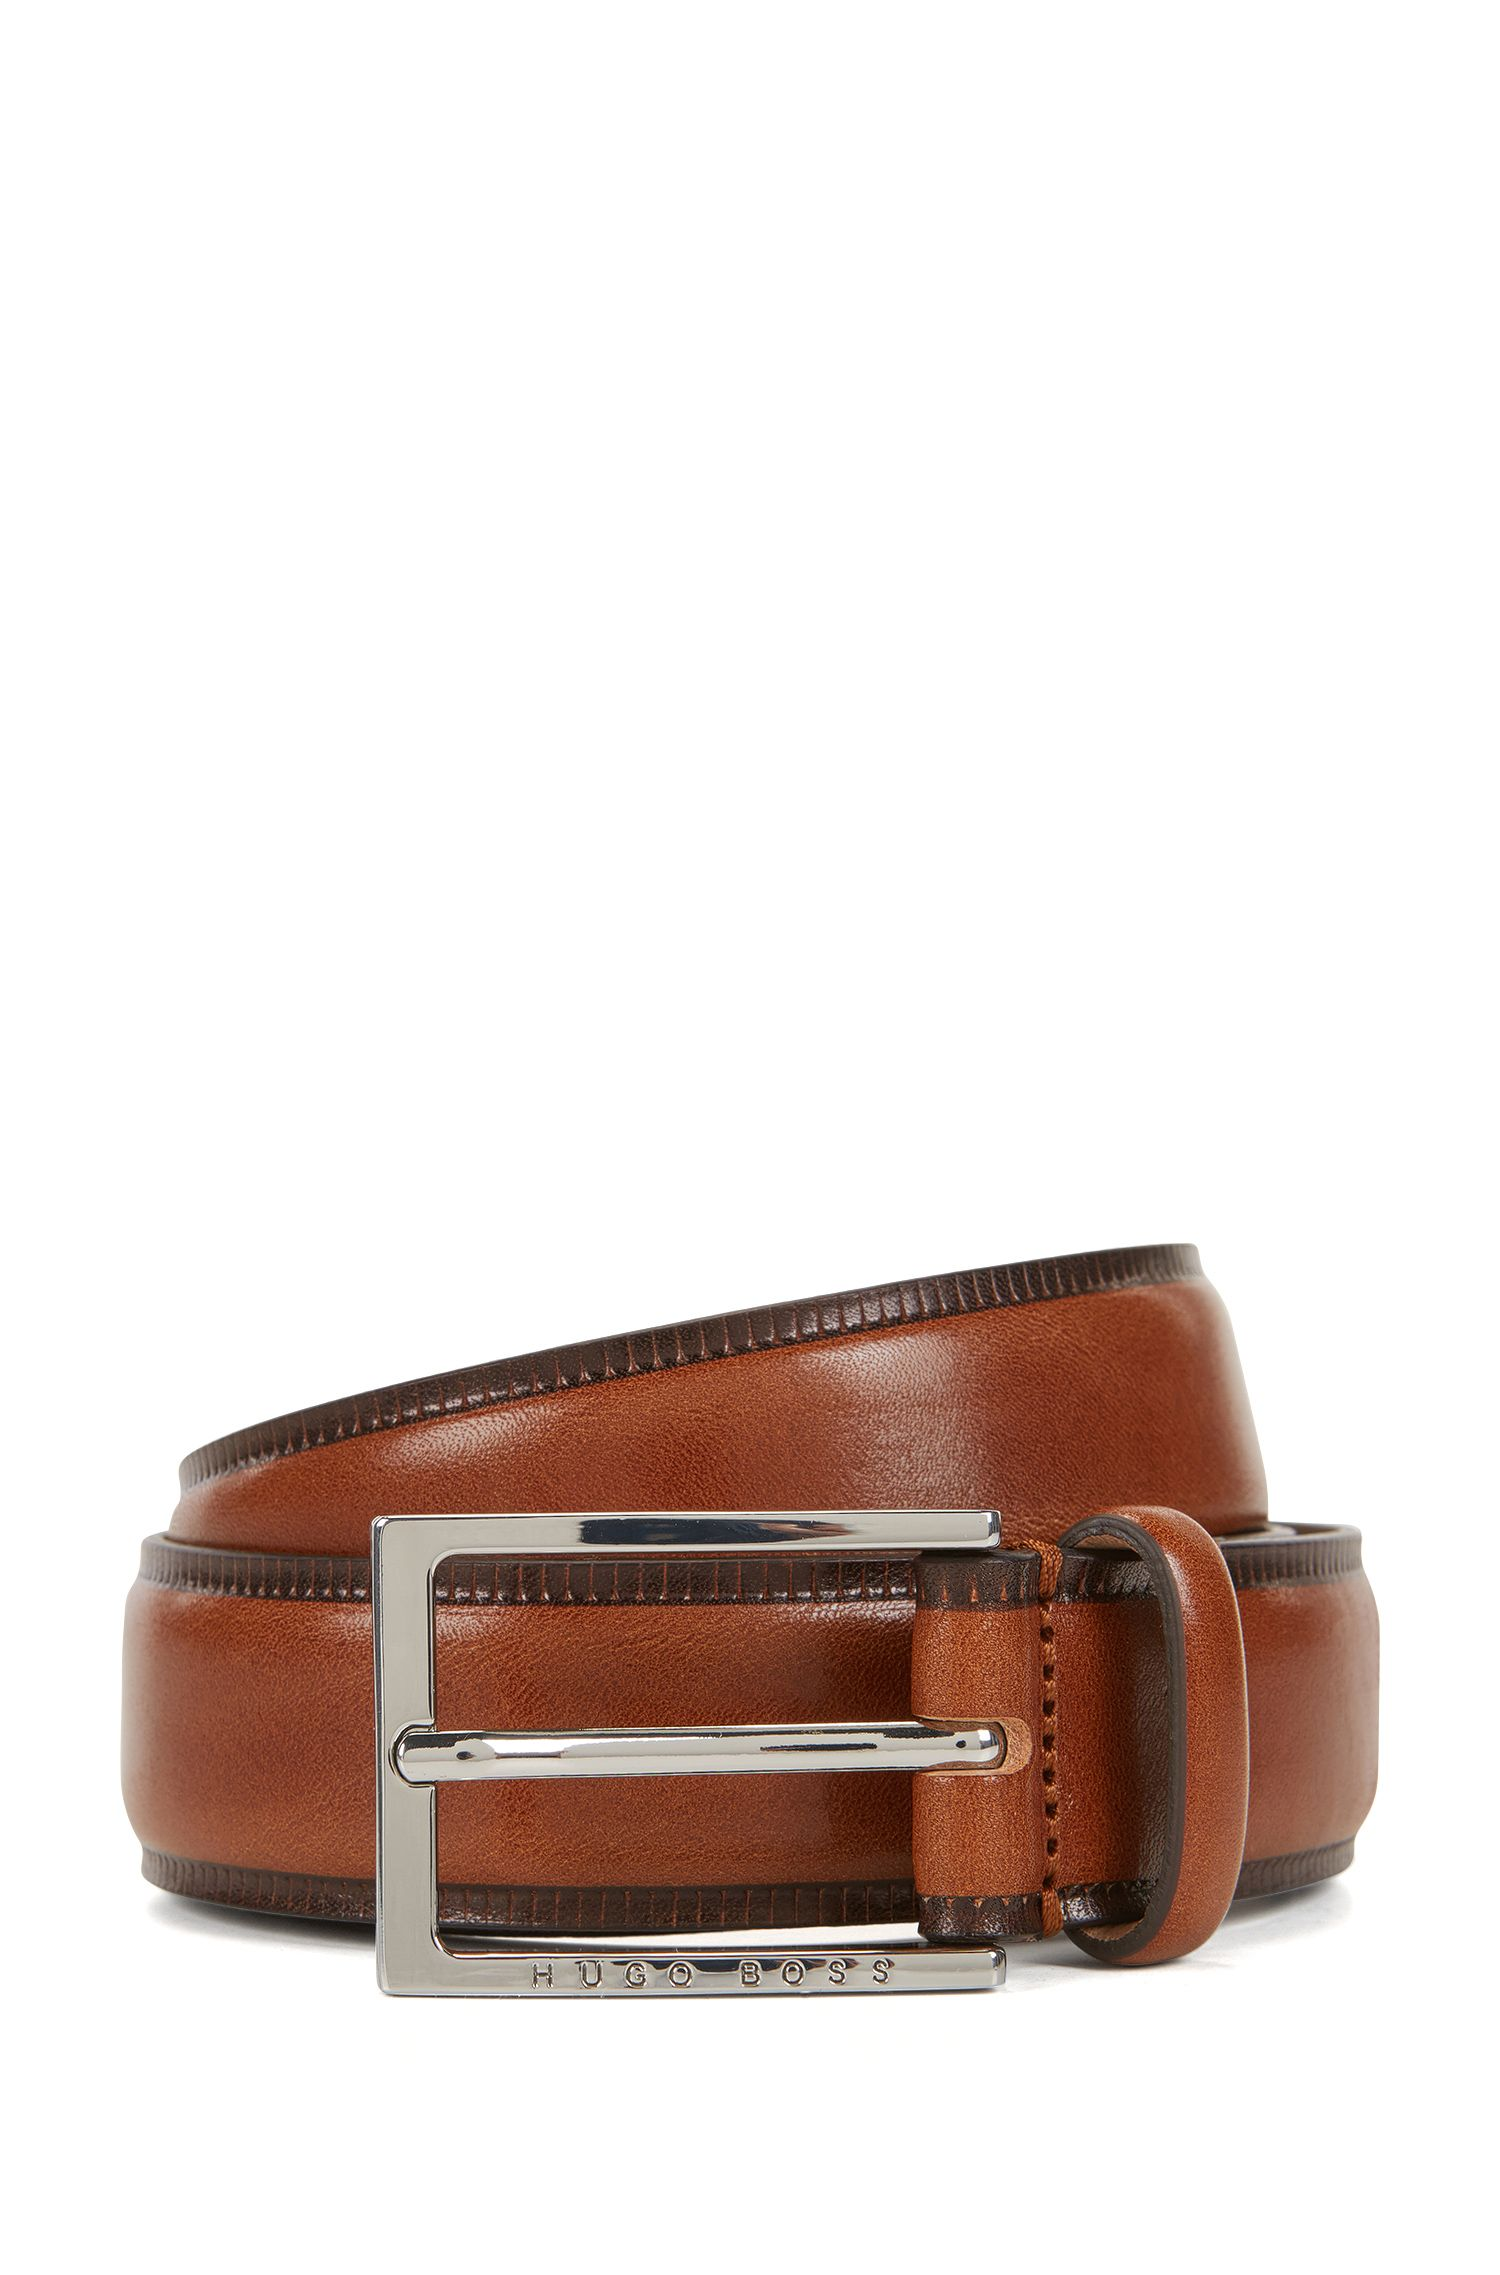 Vegetable-tanned leather belt with contrast edges